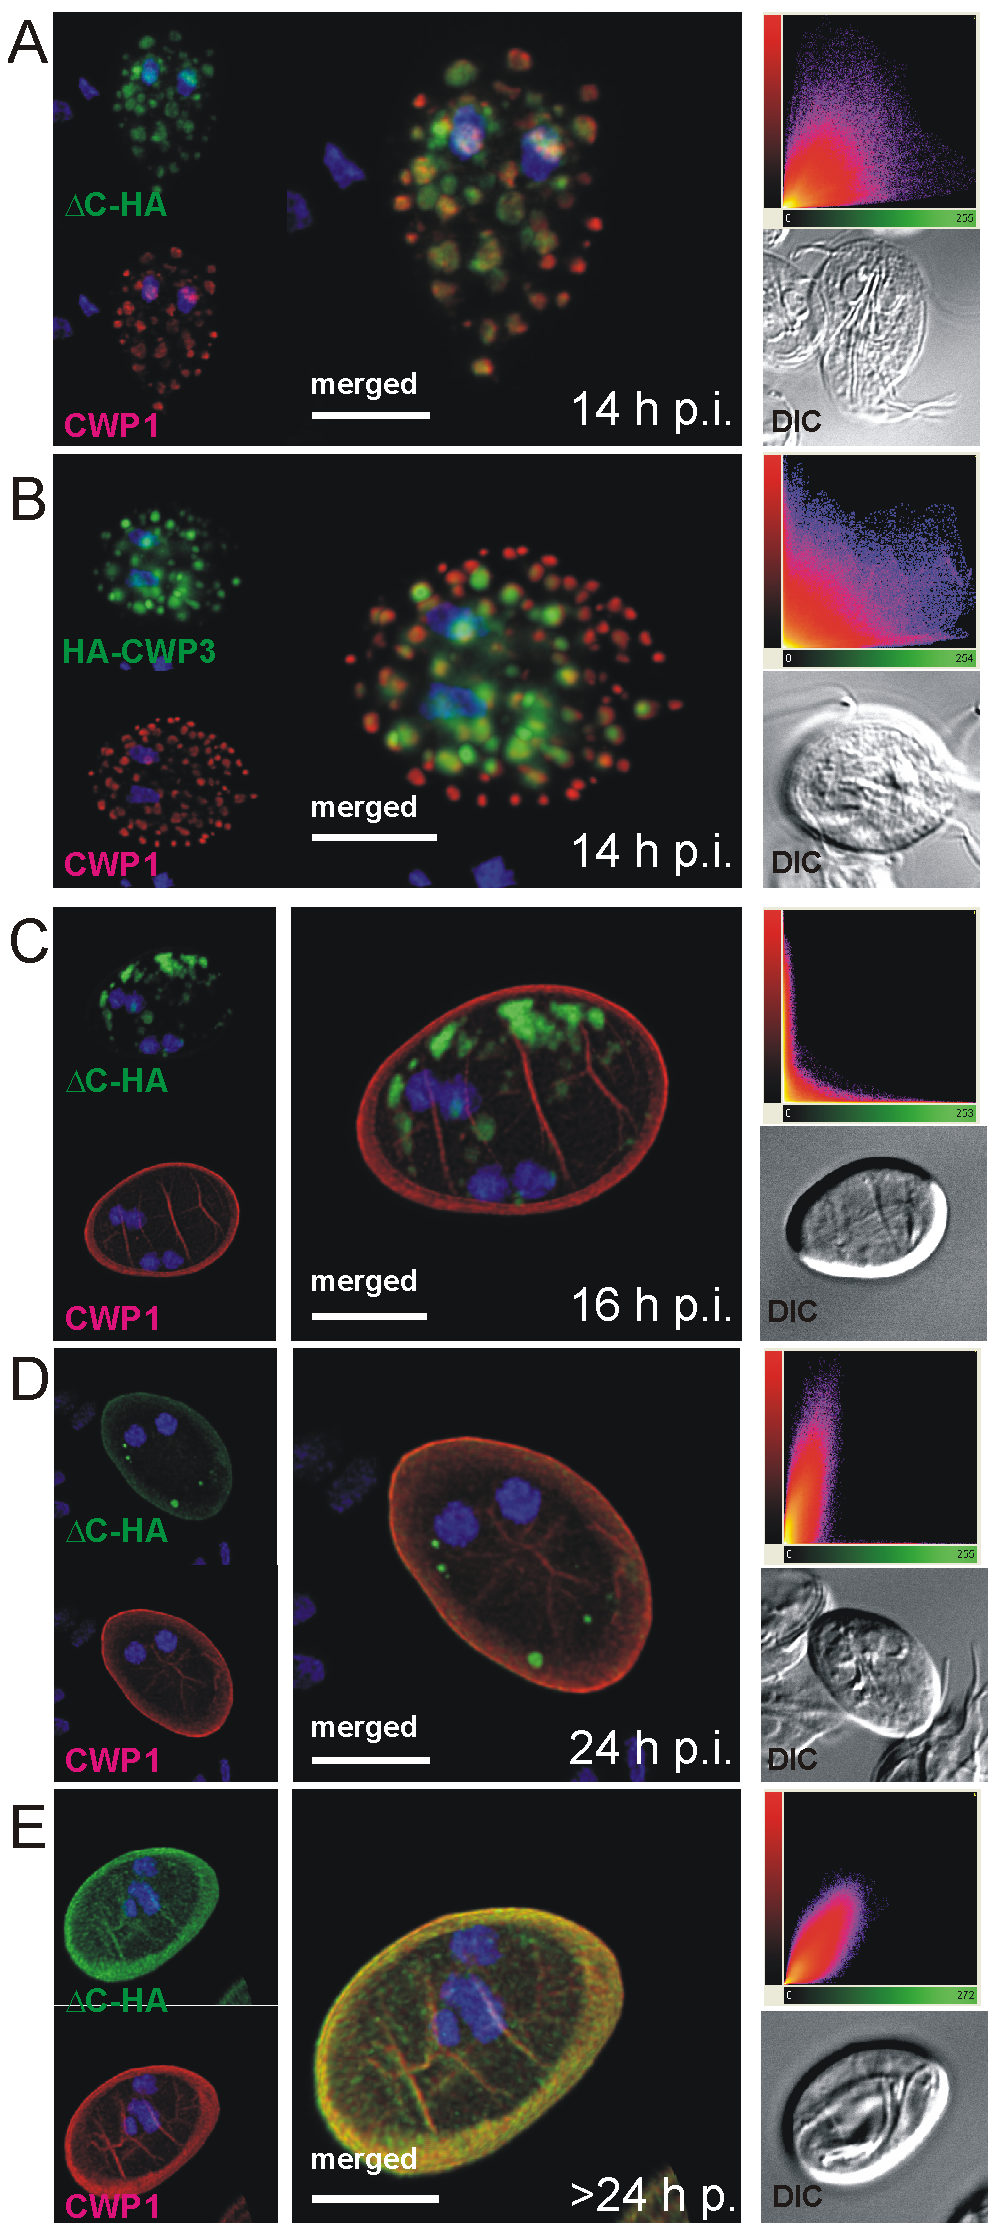 Confocal microscopy of the Flag-CWP2-HA and HA-CWP3 reporters in representative cells during late stages of encystation.